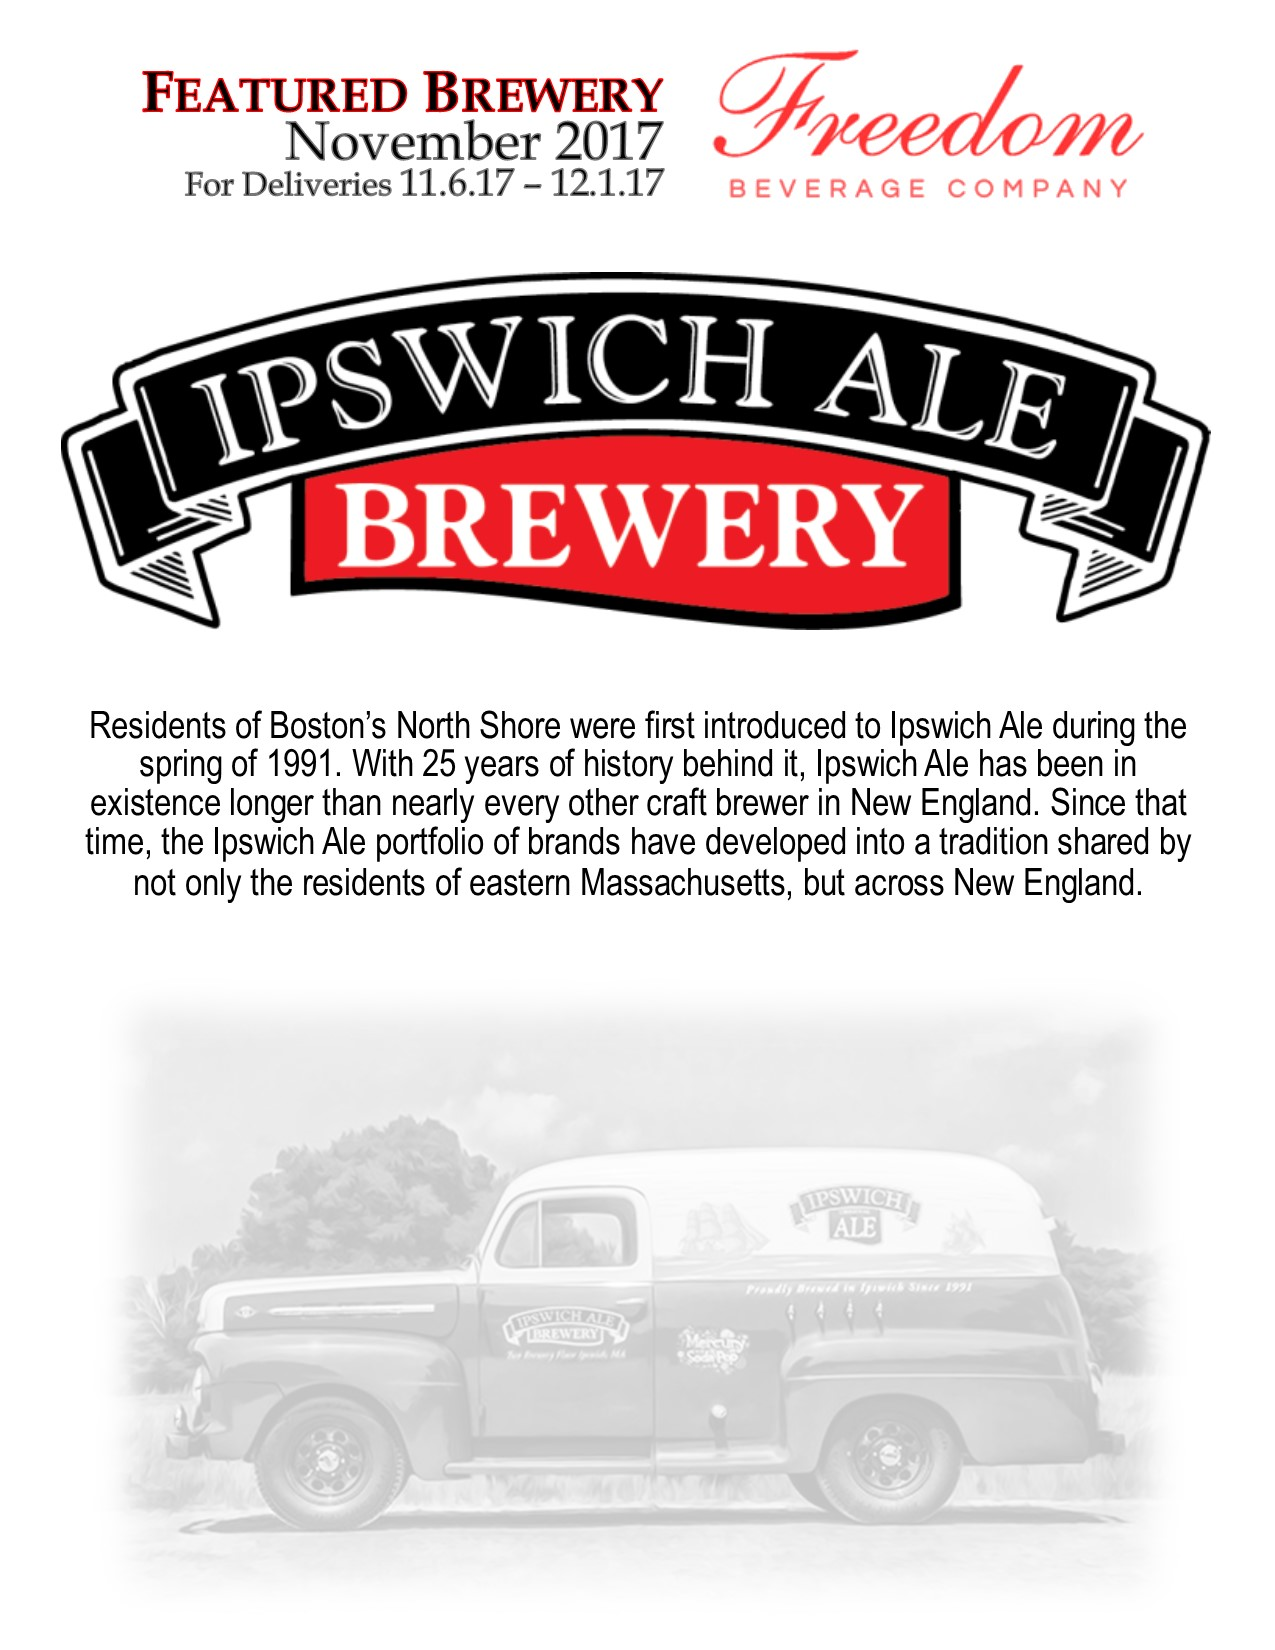 November 2017 Featured Brewery - Ipswich - WEBSITE.jpg